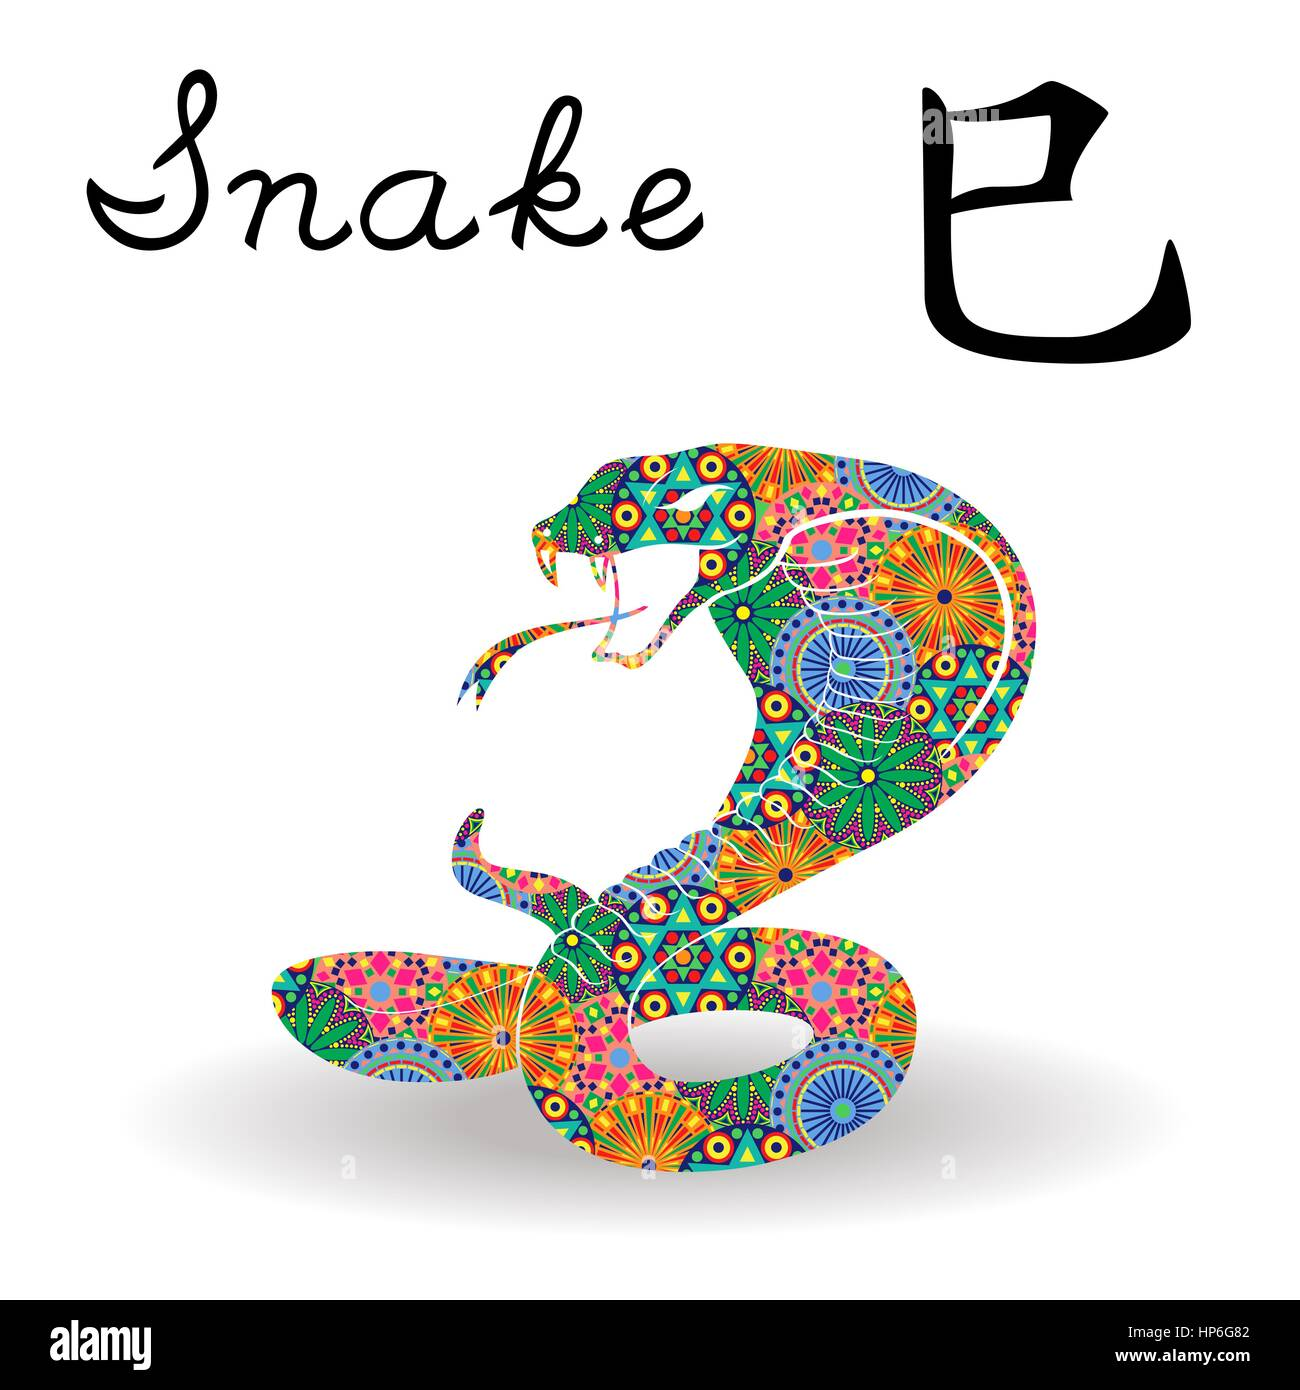 Chinese calligraphy symbol fire element stock photos chinese chinese zodiac sign snake fixed element fire symbol of new year on the eastern buycottarizona Images